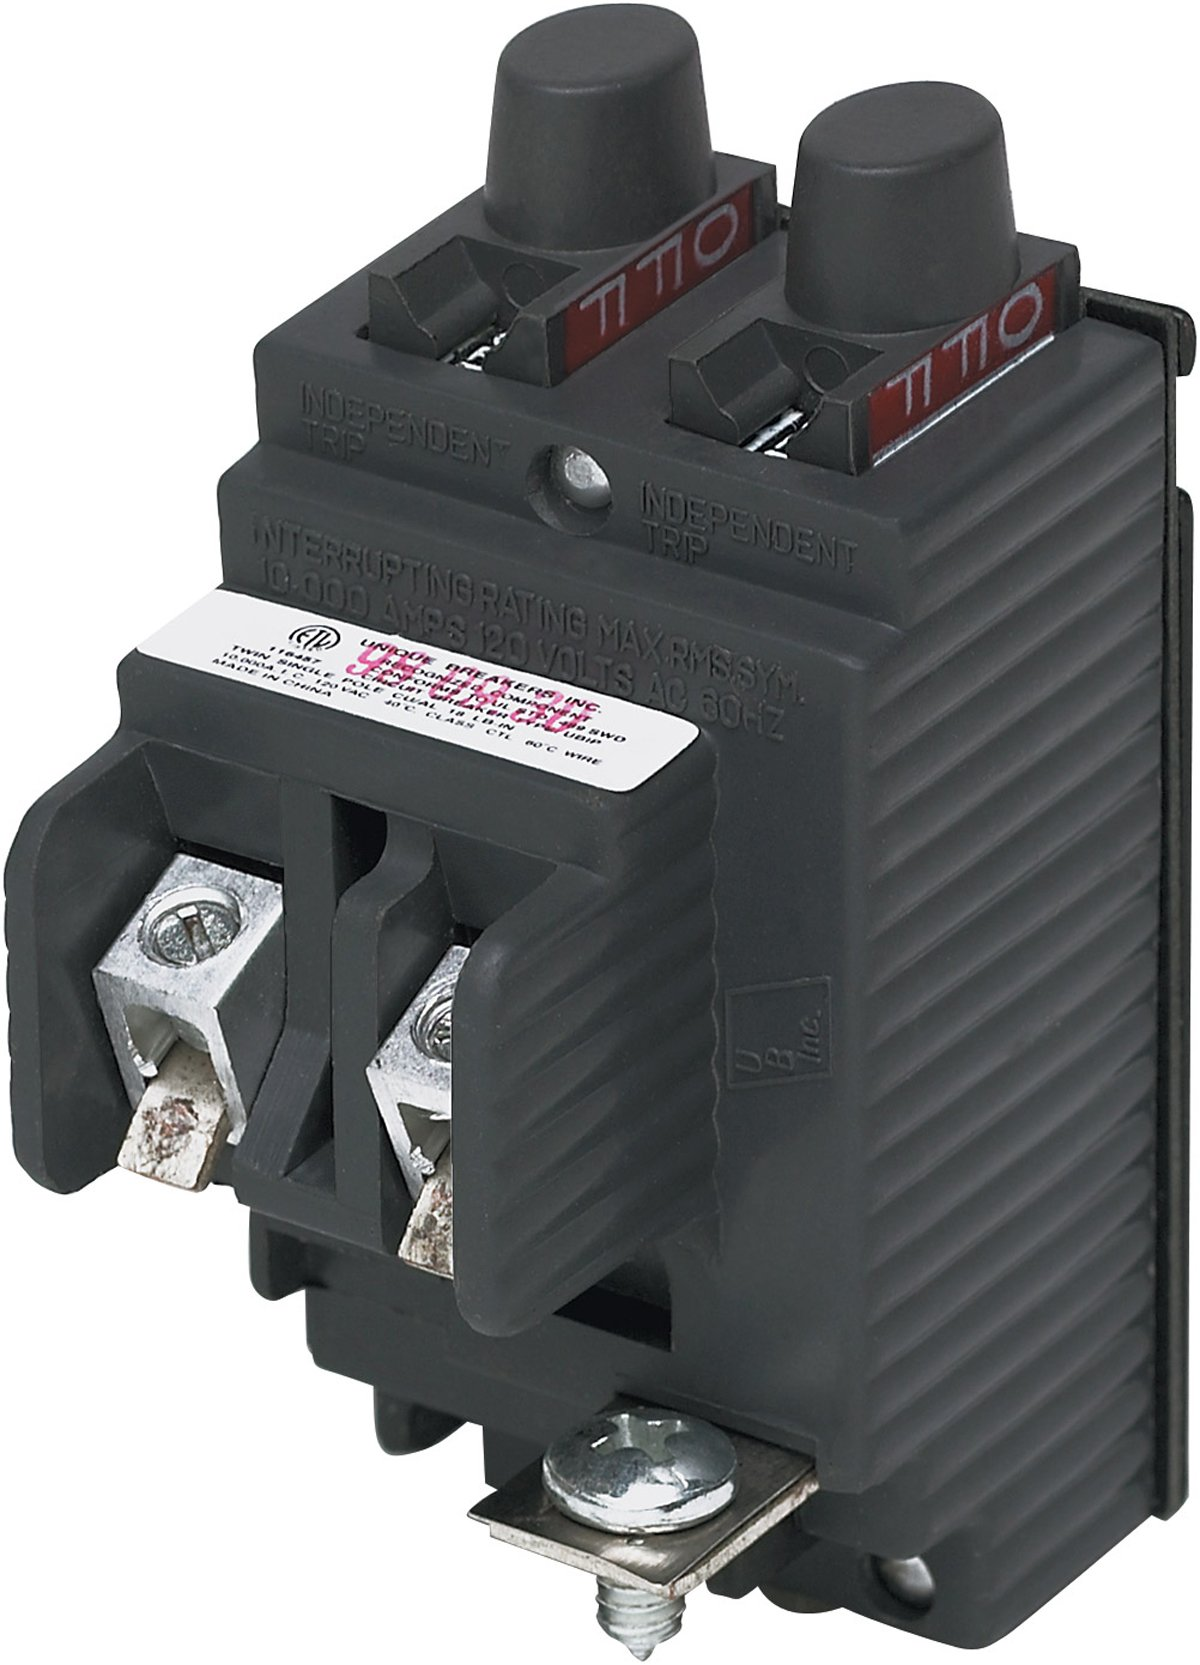 UBIP2020-New Pushmatic P2020 Replacement.  Twin 20 Amp Circuit Breaker Manufactured by Connecticut Electric.